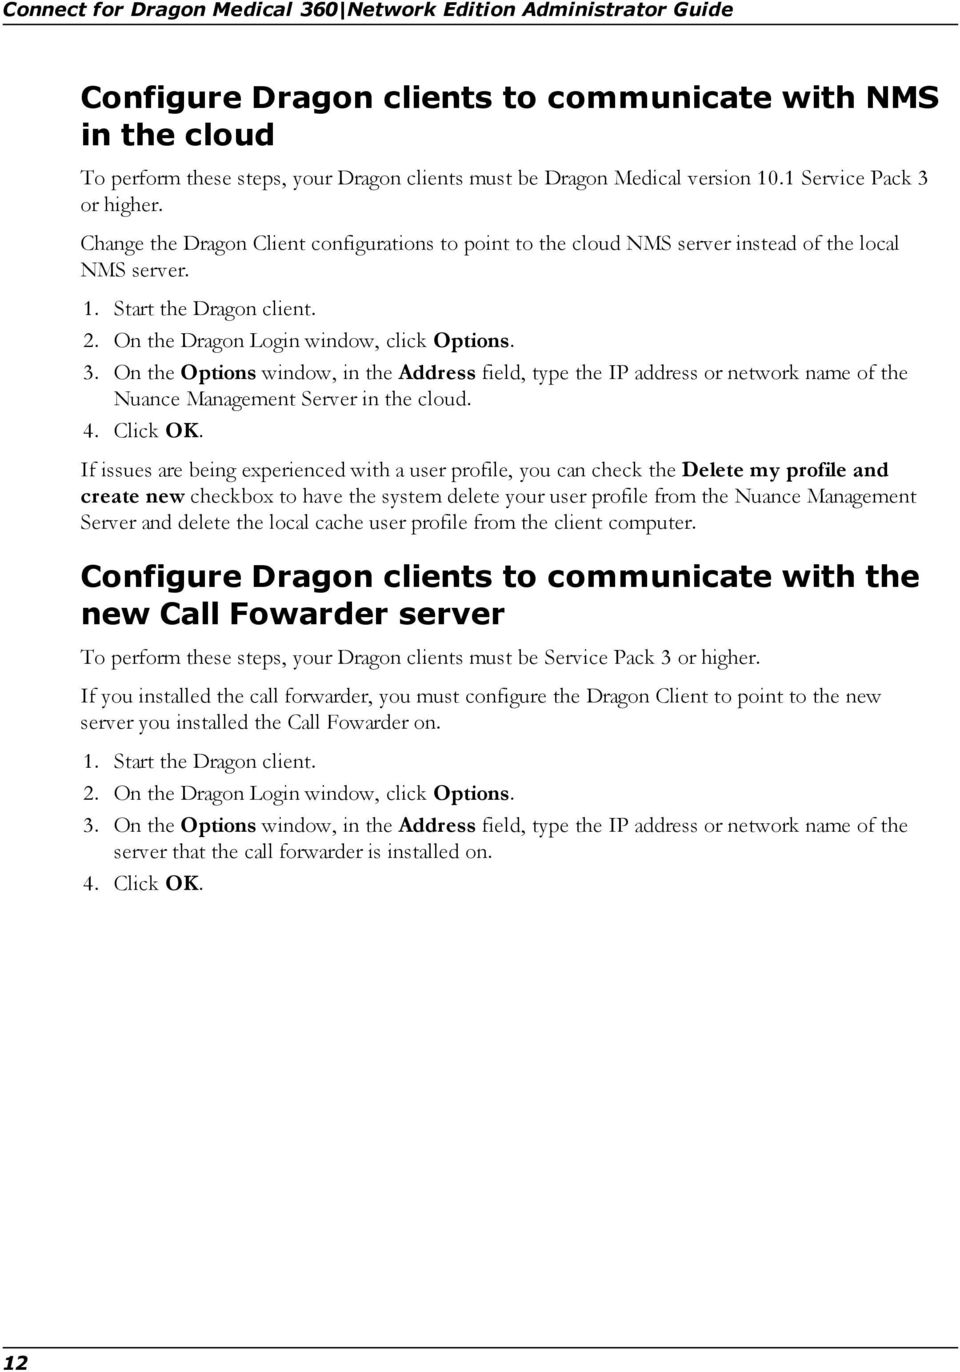 On the Dragon Login window, click Options. 3. On the Options window, in the Address field, type the IP address or network name of the Nuance Management Server in the cloud. 4. Click OK.